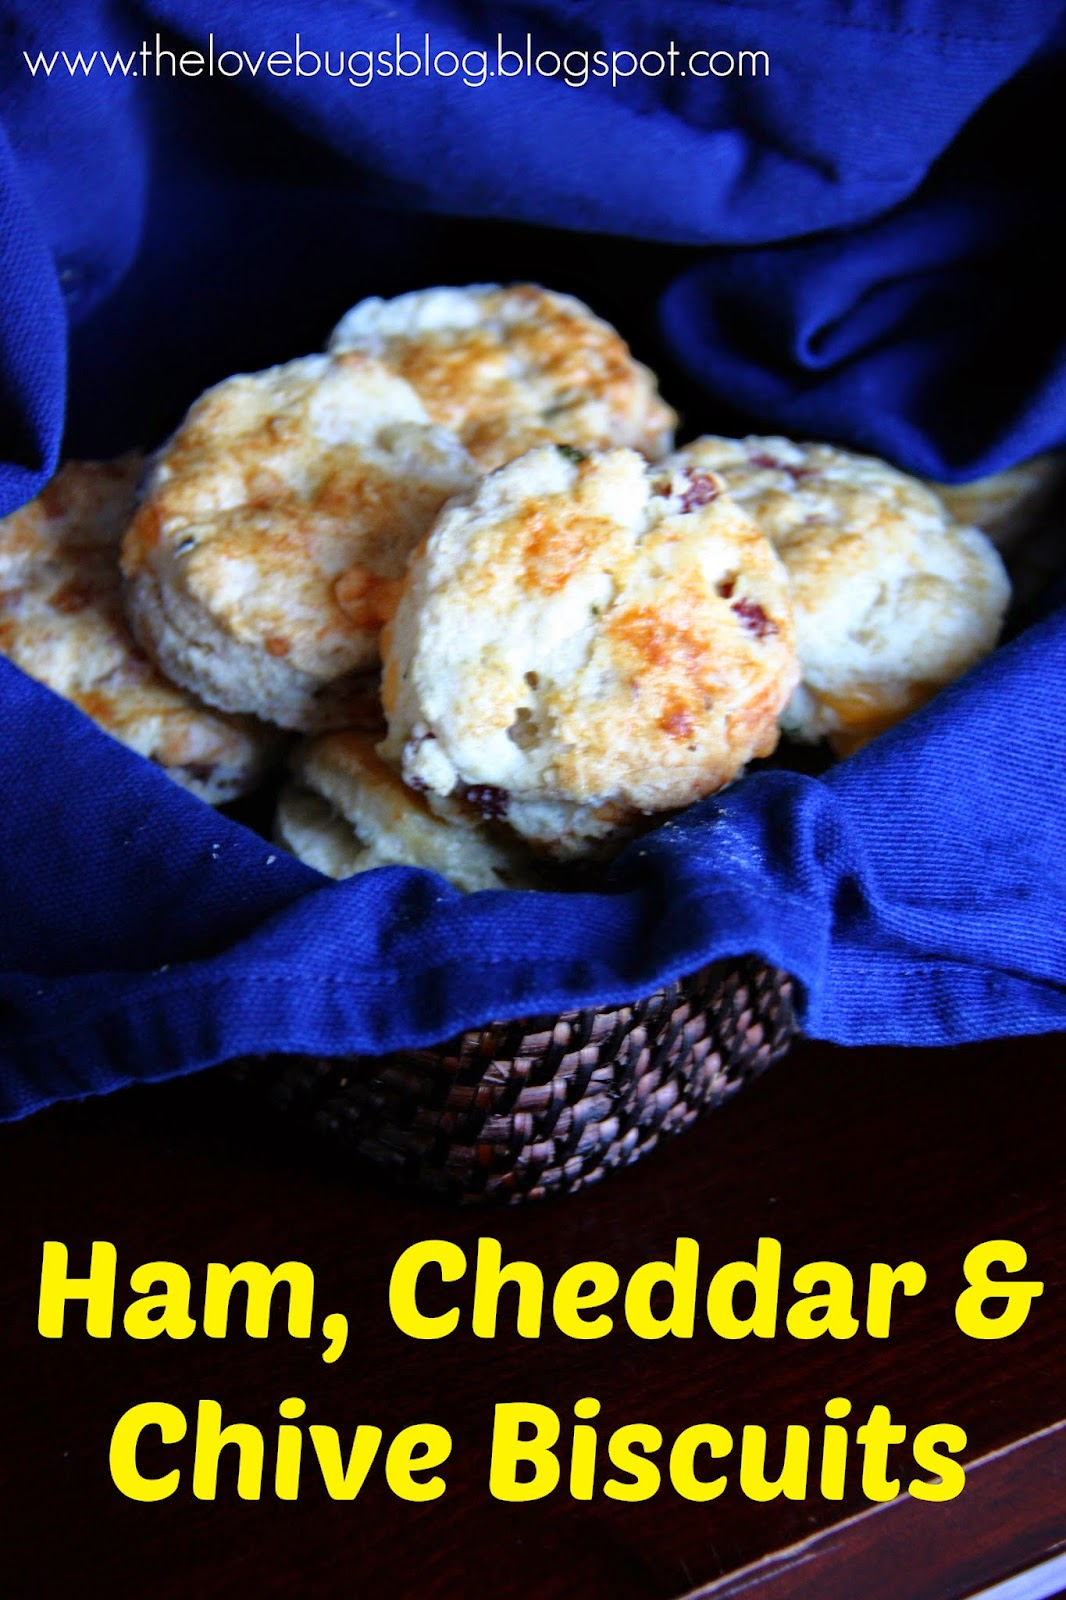 Ham, Cheddar & Chive Biscuit